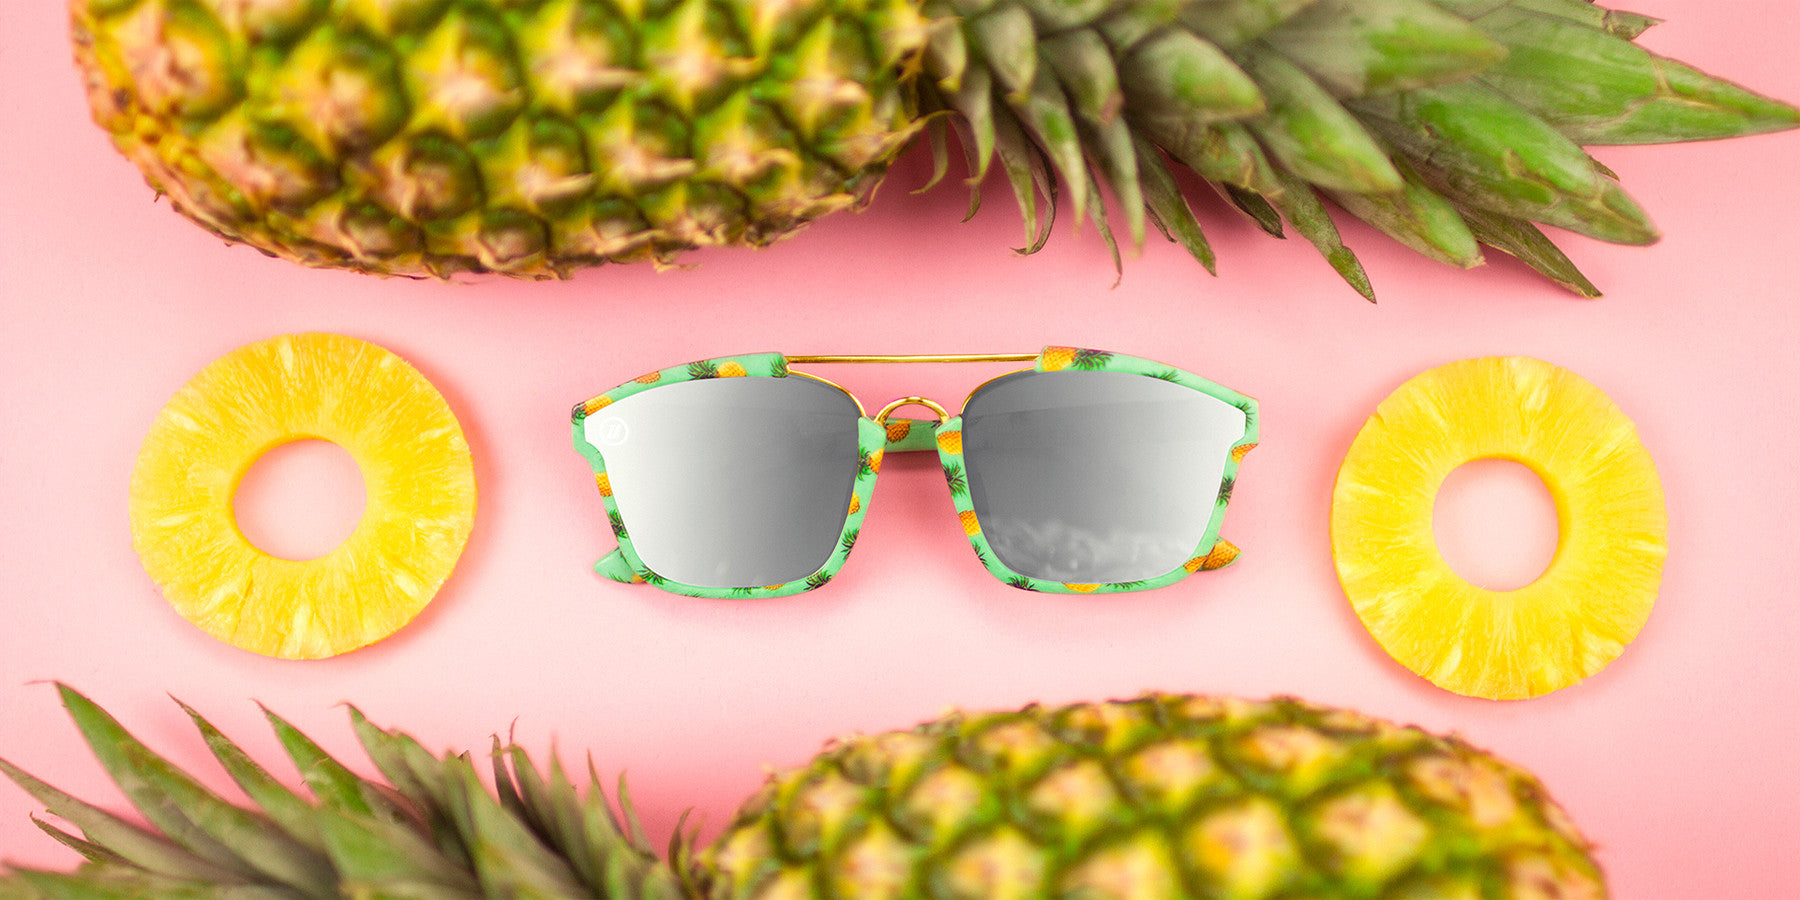 Product Spotlight: Blenders Pineapple Express and Merica Sunglasses